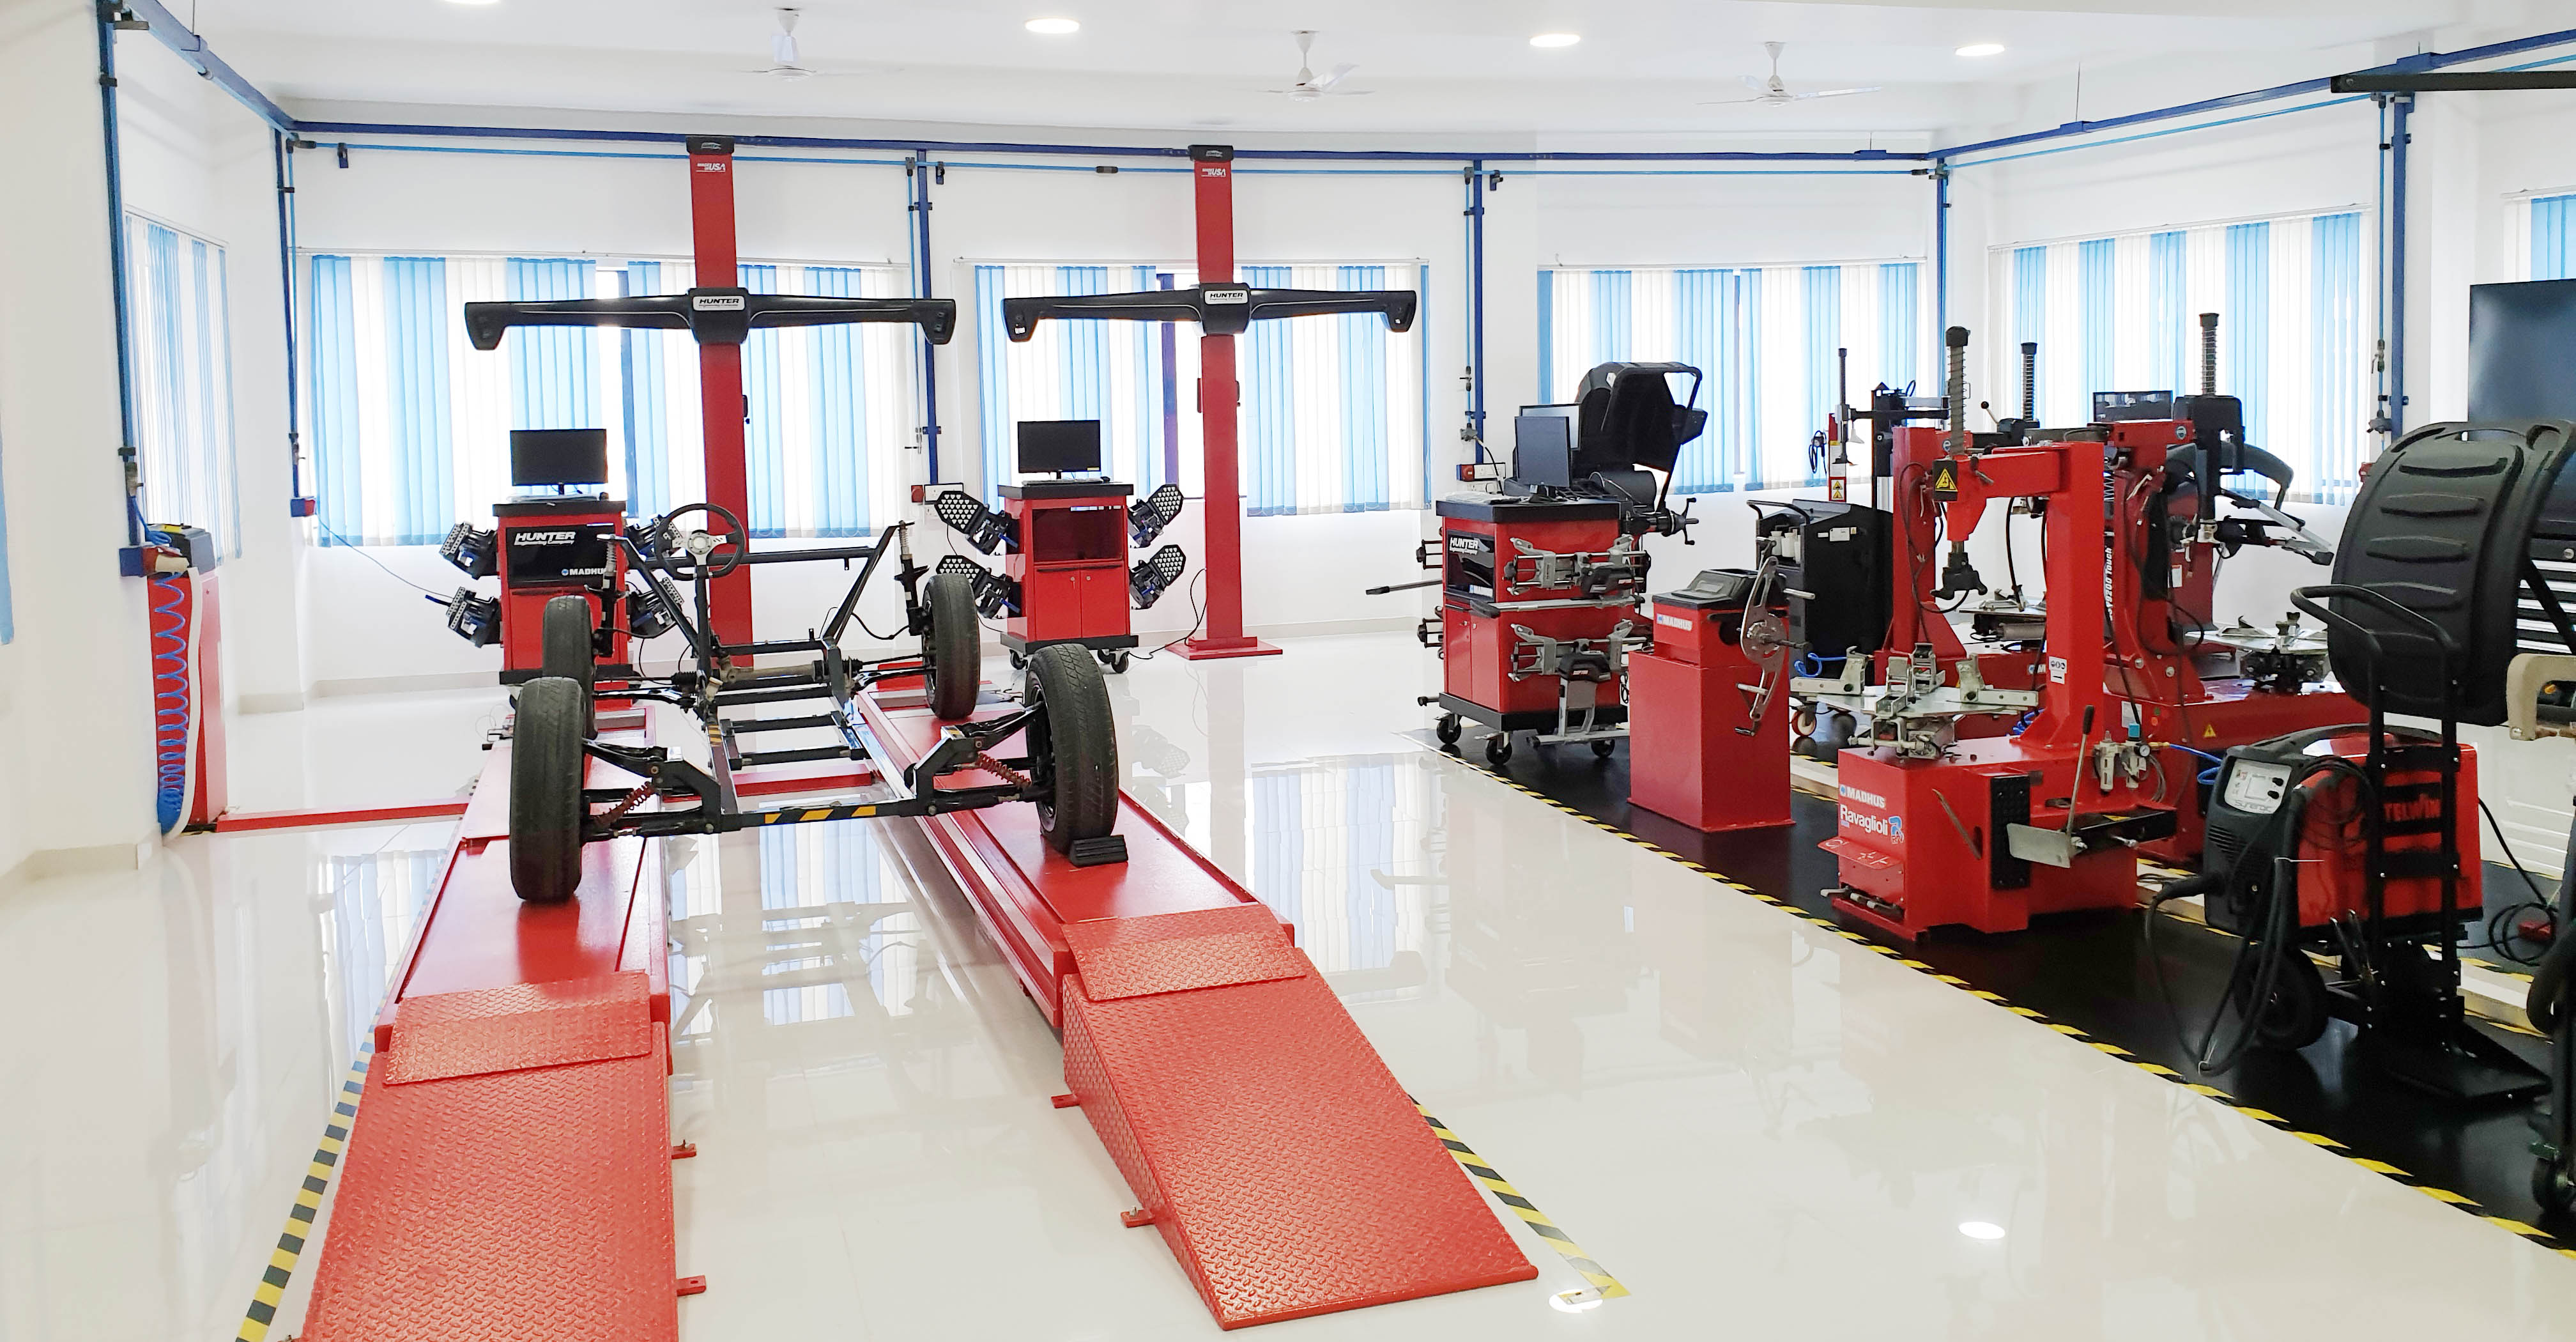 Madhus Garage Equipment - Delhi Training center